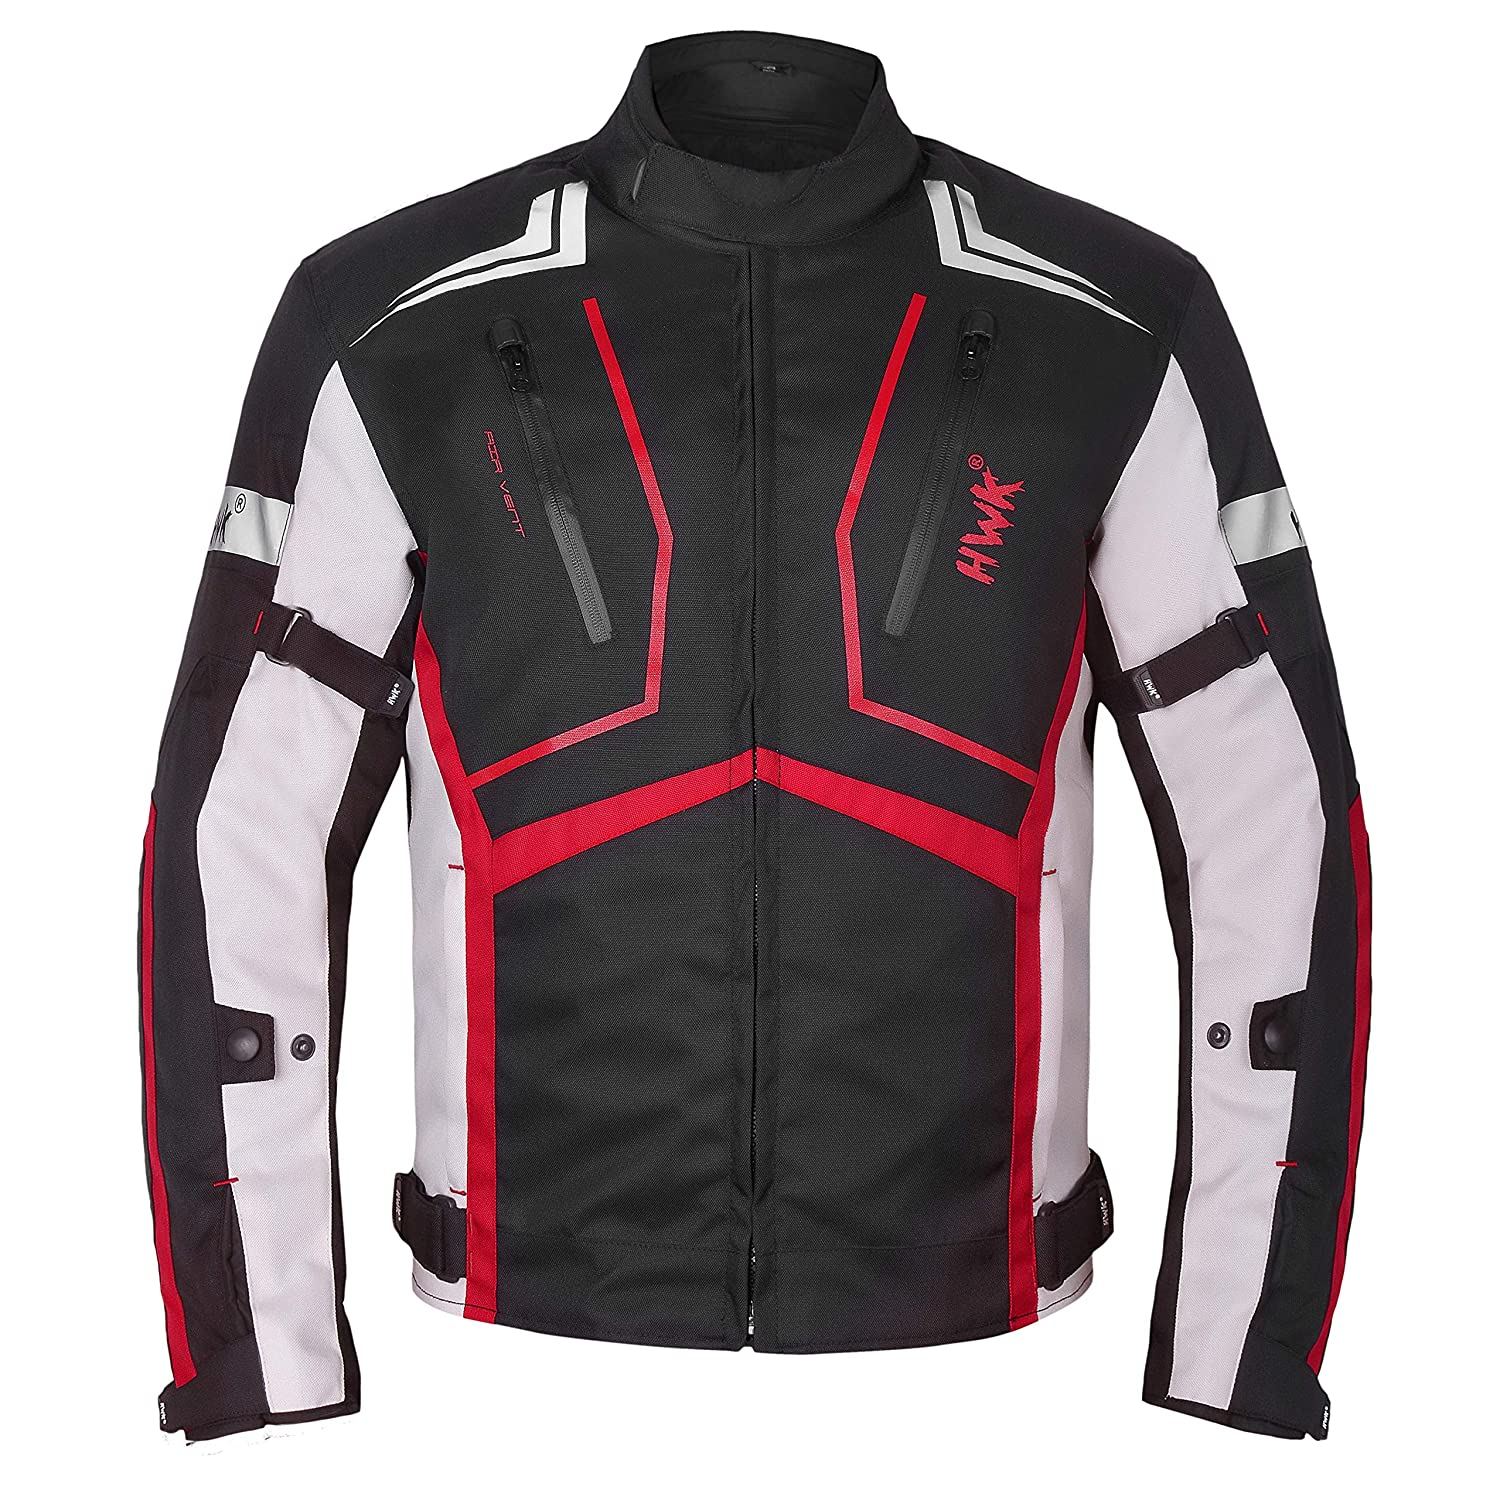 Hi-Vis Green, Small Motorcycle Jacket For Men Cordura Motorbike Racing Biker Riding Breathable CE Armored Waterproof All-Weather